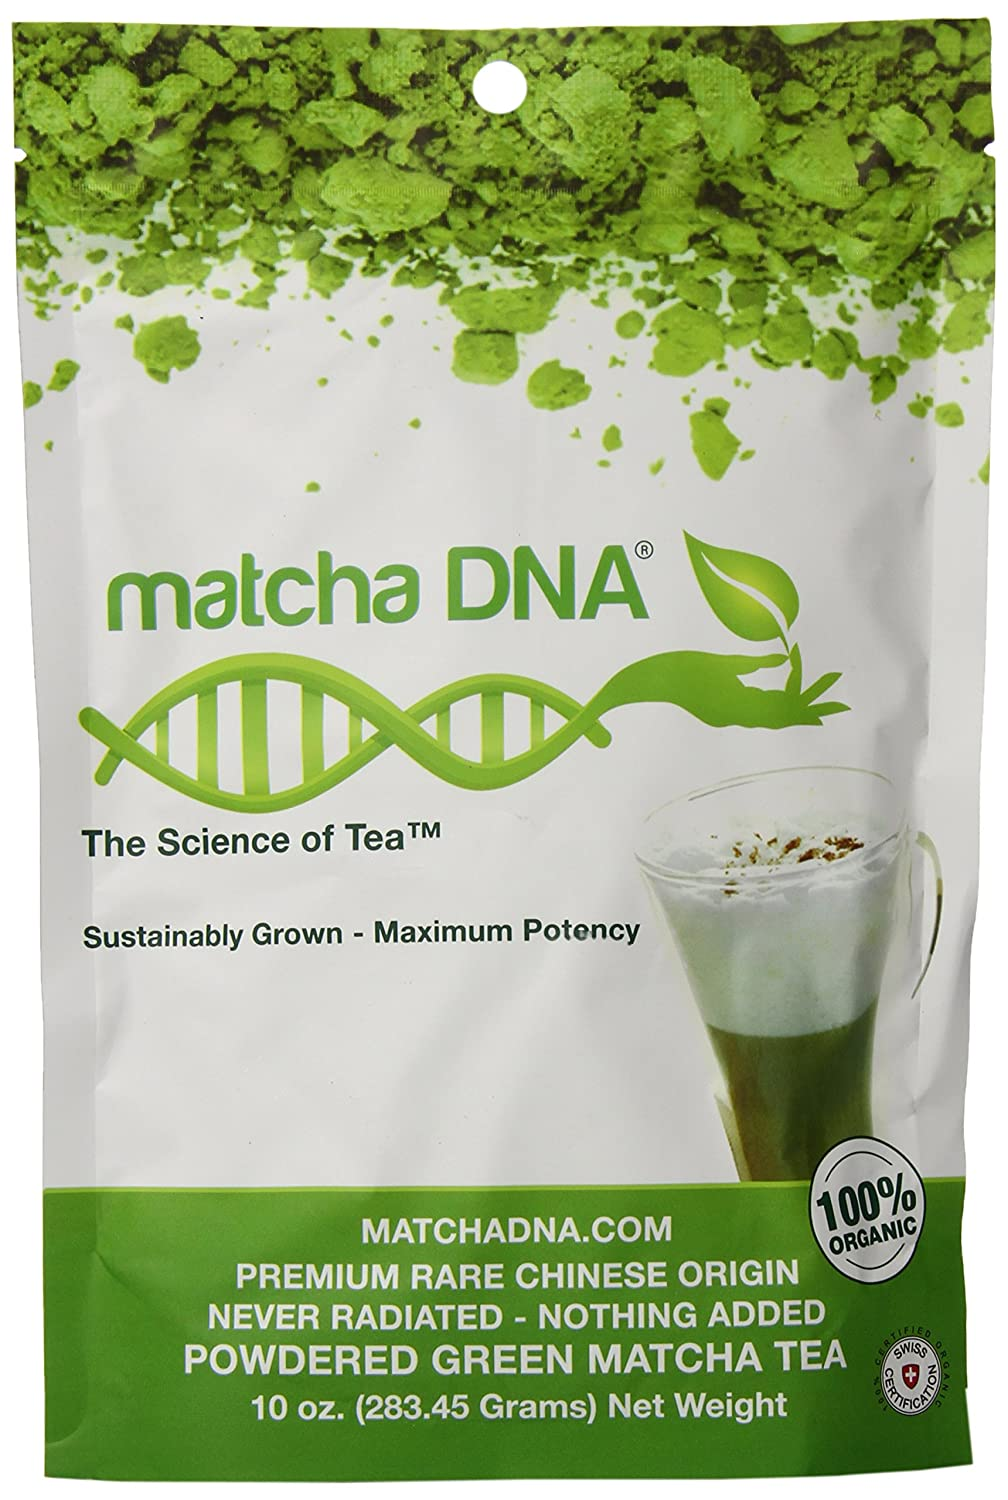 Match green tea